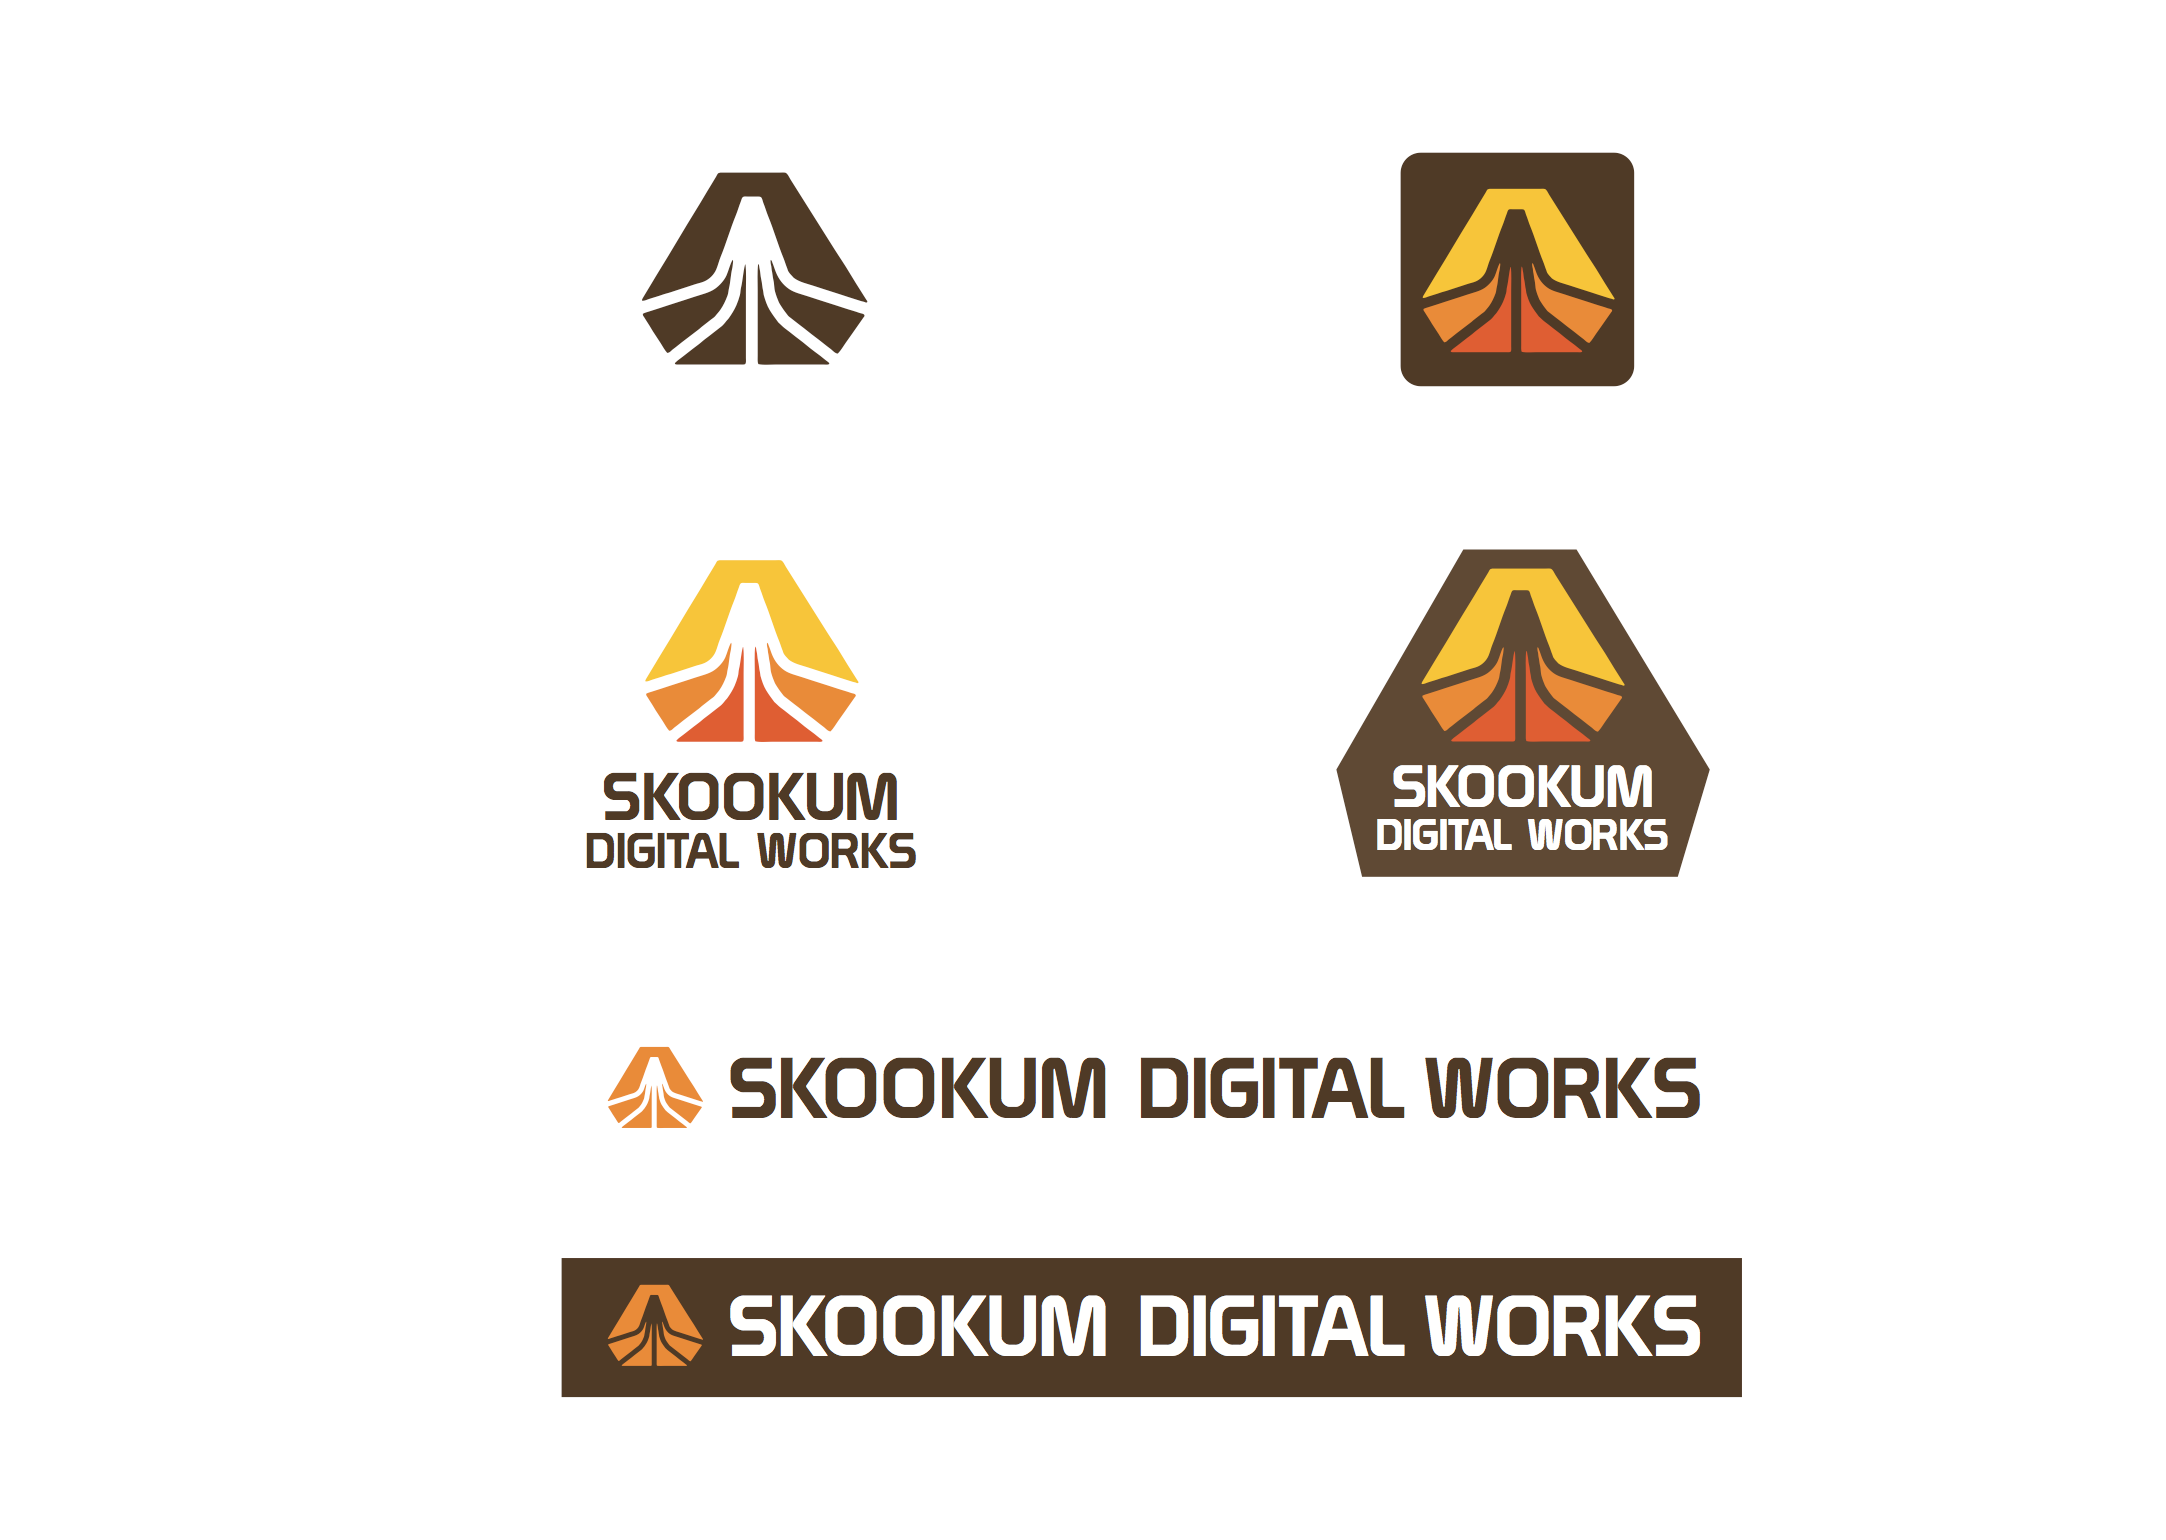 Skookum gets a new Identity